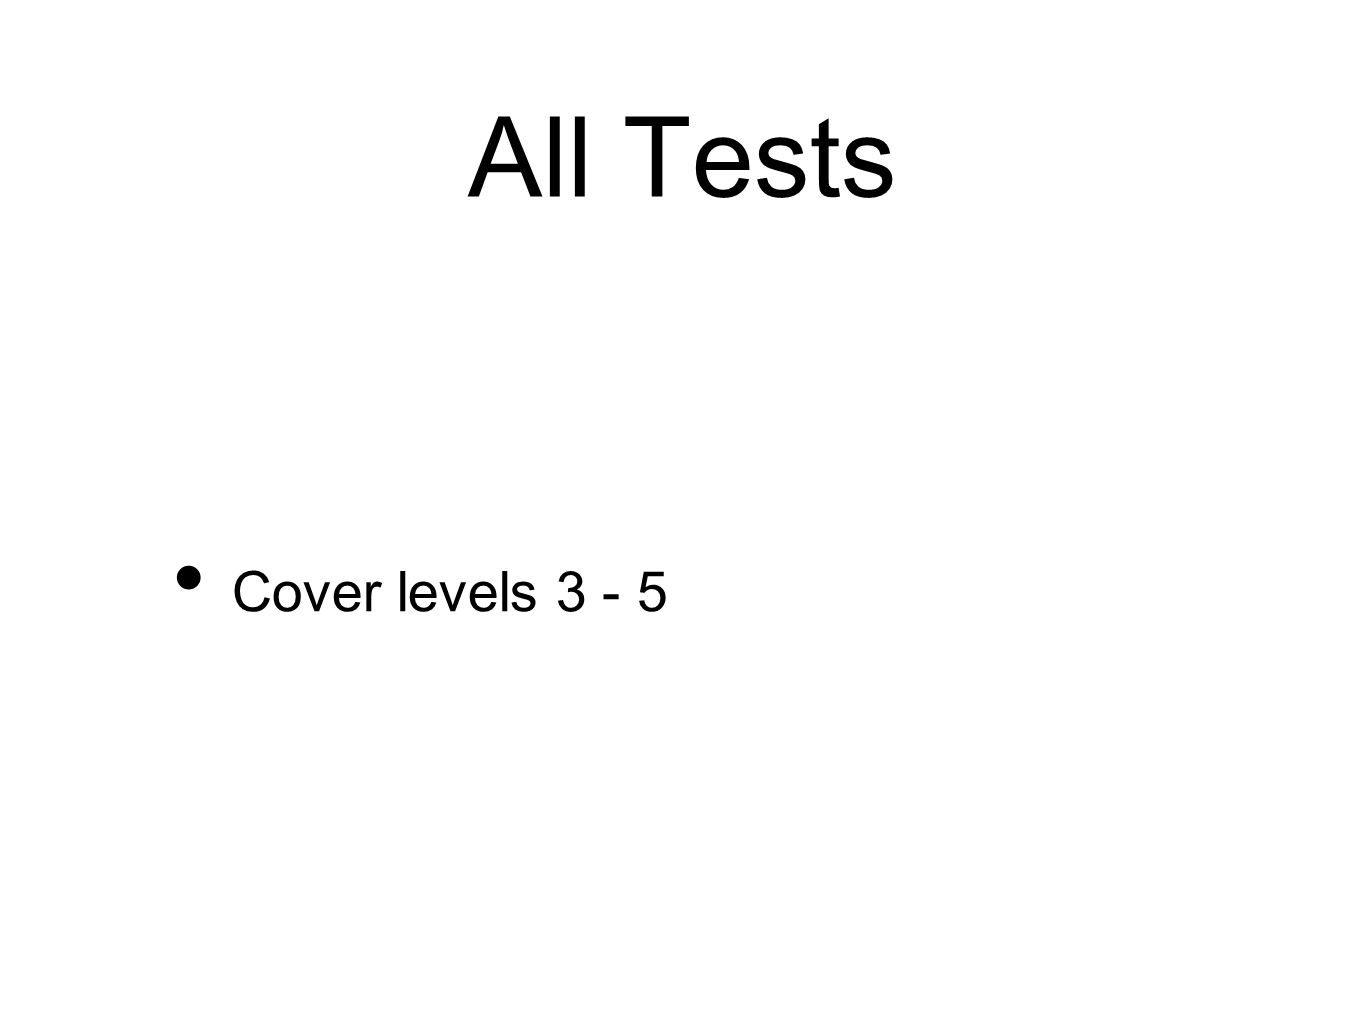 All Tests Cover levels 3 - 5